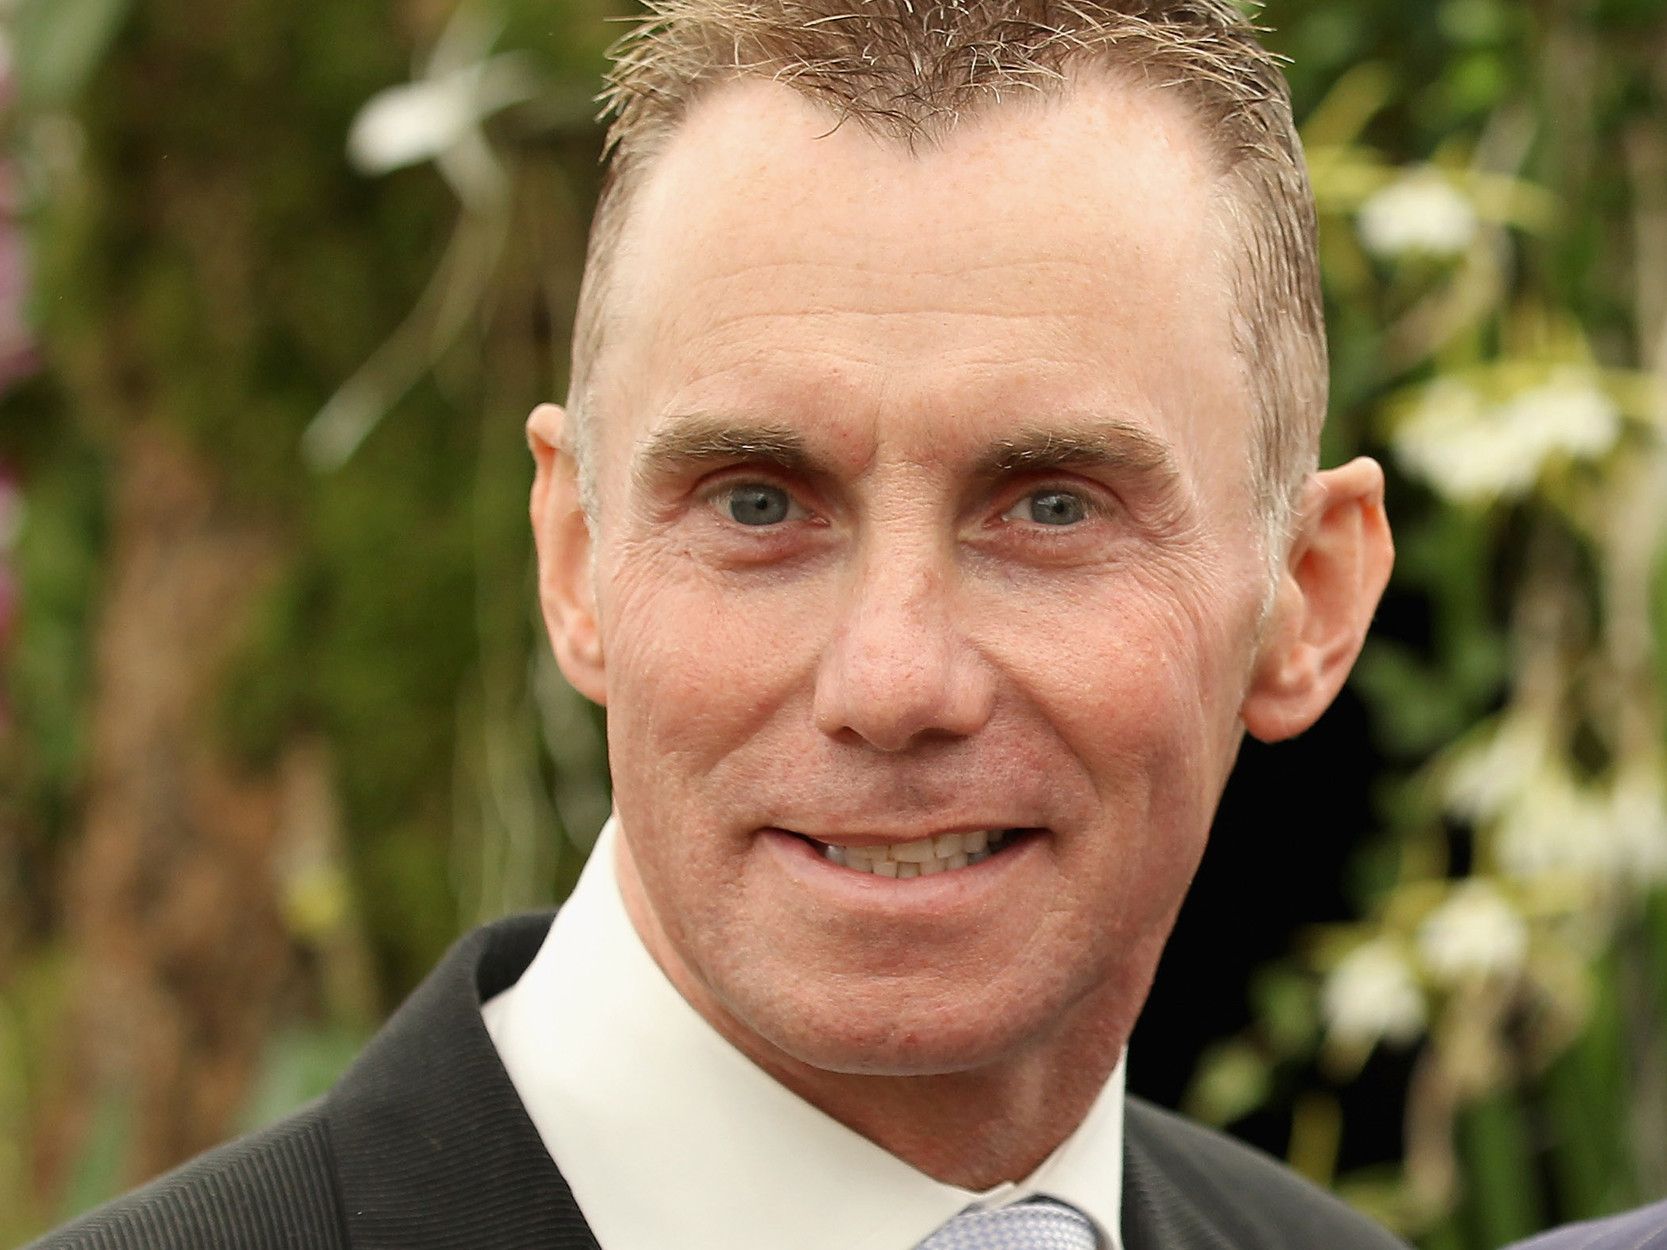 Celebrity chef Gary Rhodes dead at 59; Gordon Ramsay praises him for putting 'British cuisine on the map'